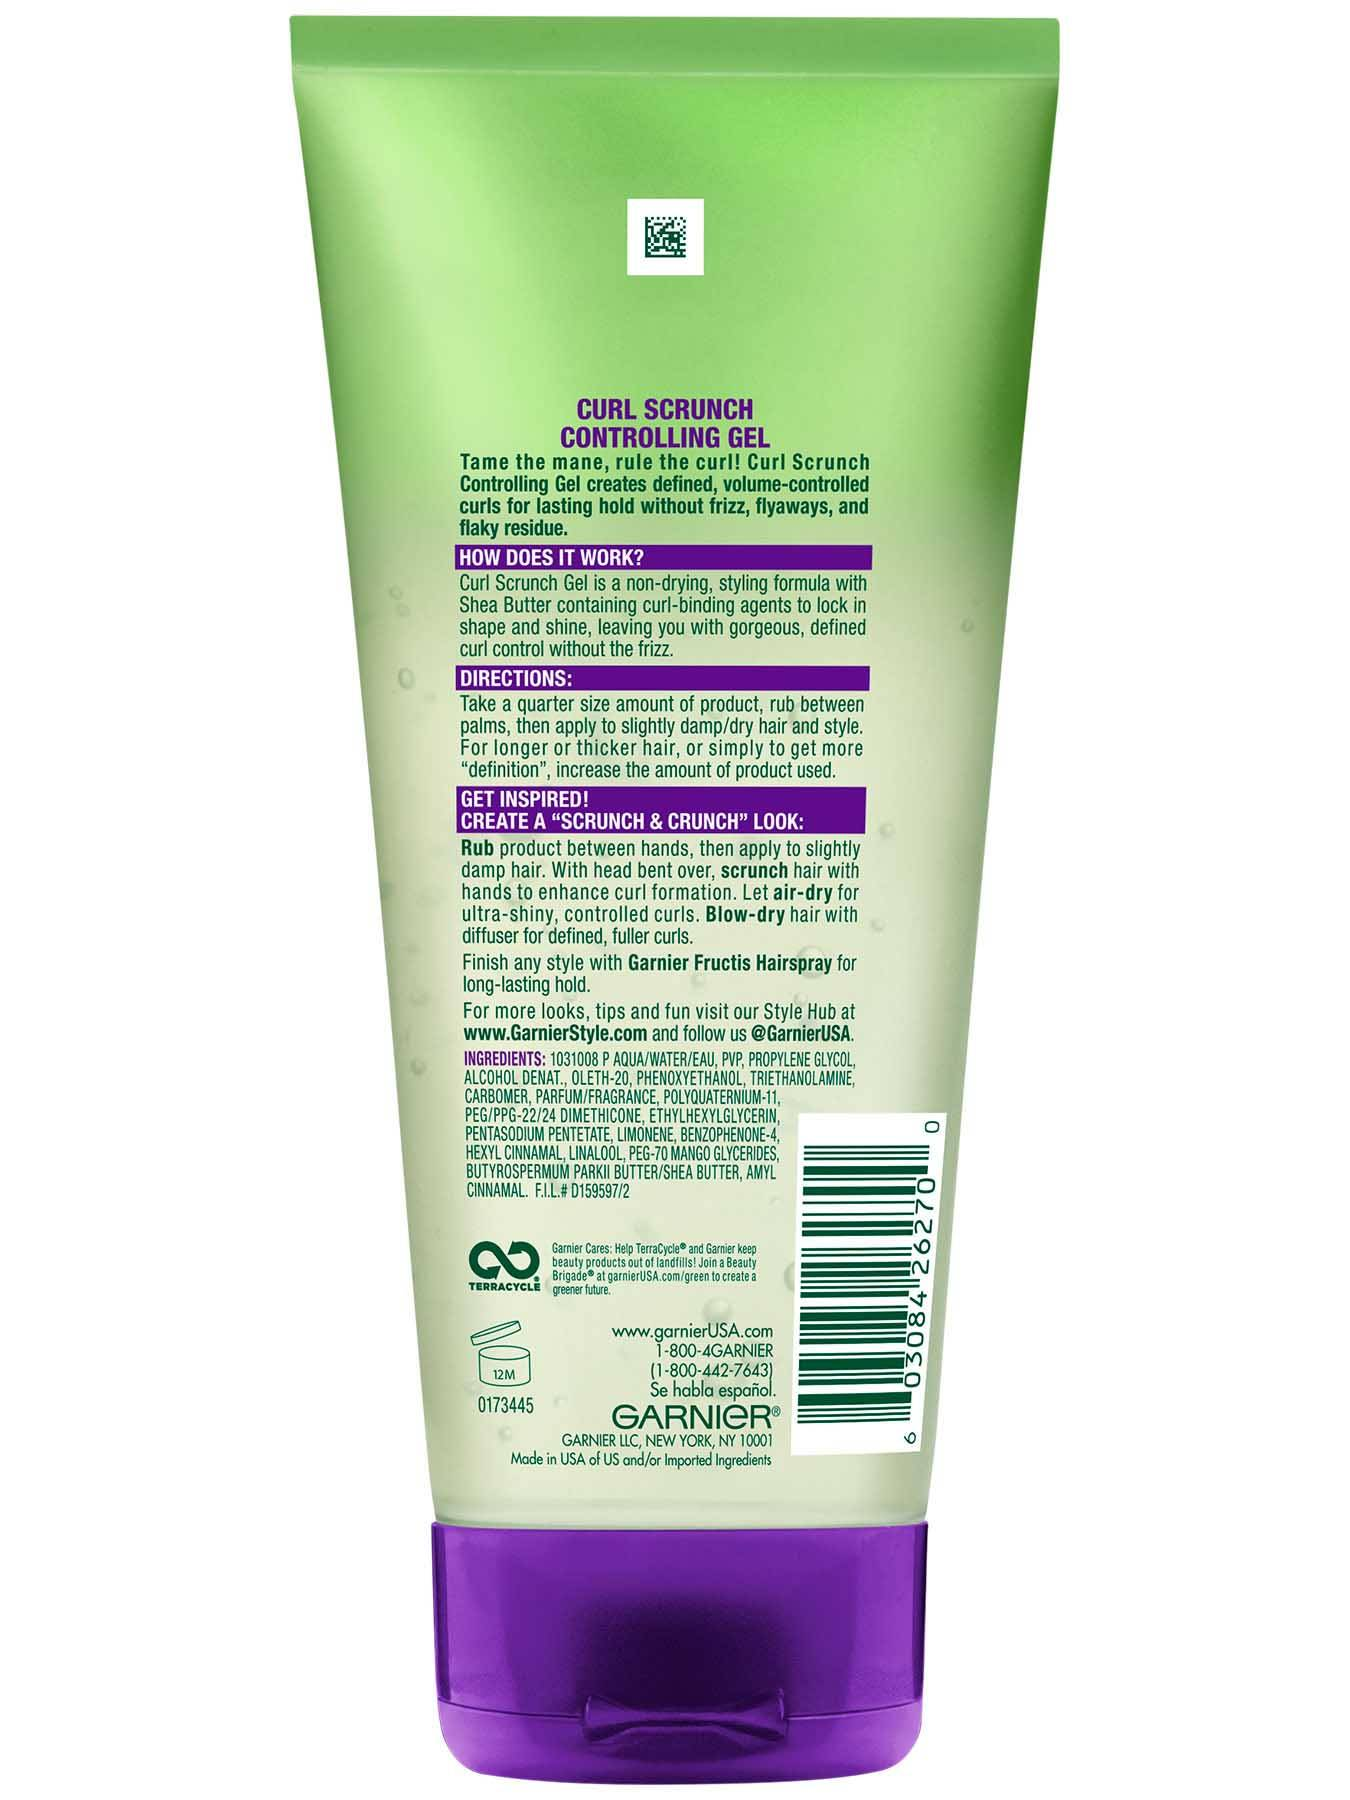 Garnier Fructis Style Curl Scrunch Controlling Gel Back Of Bottle